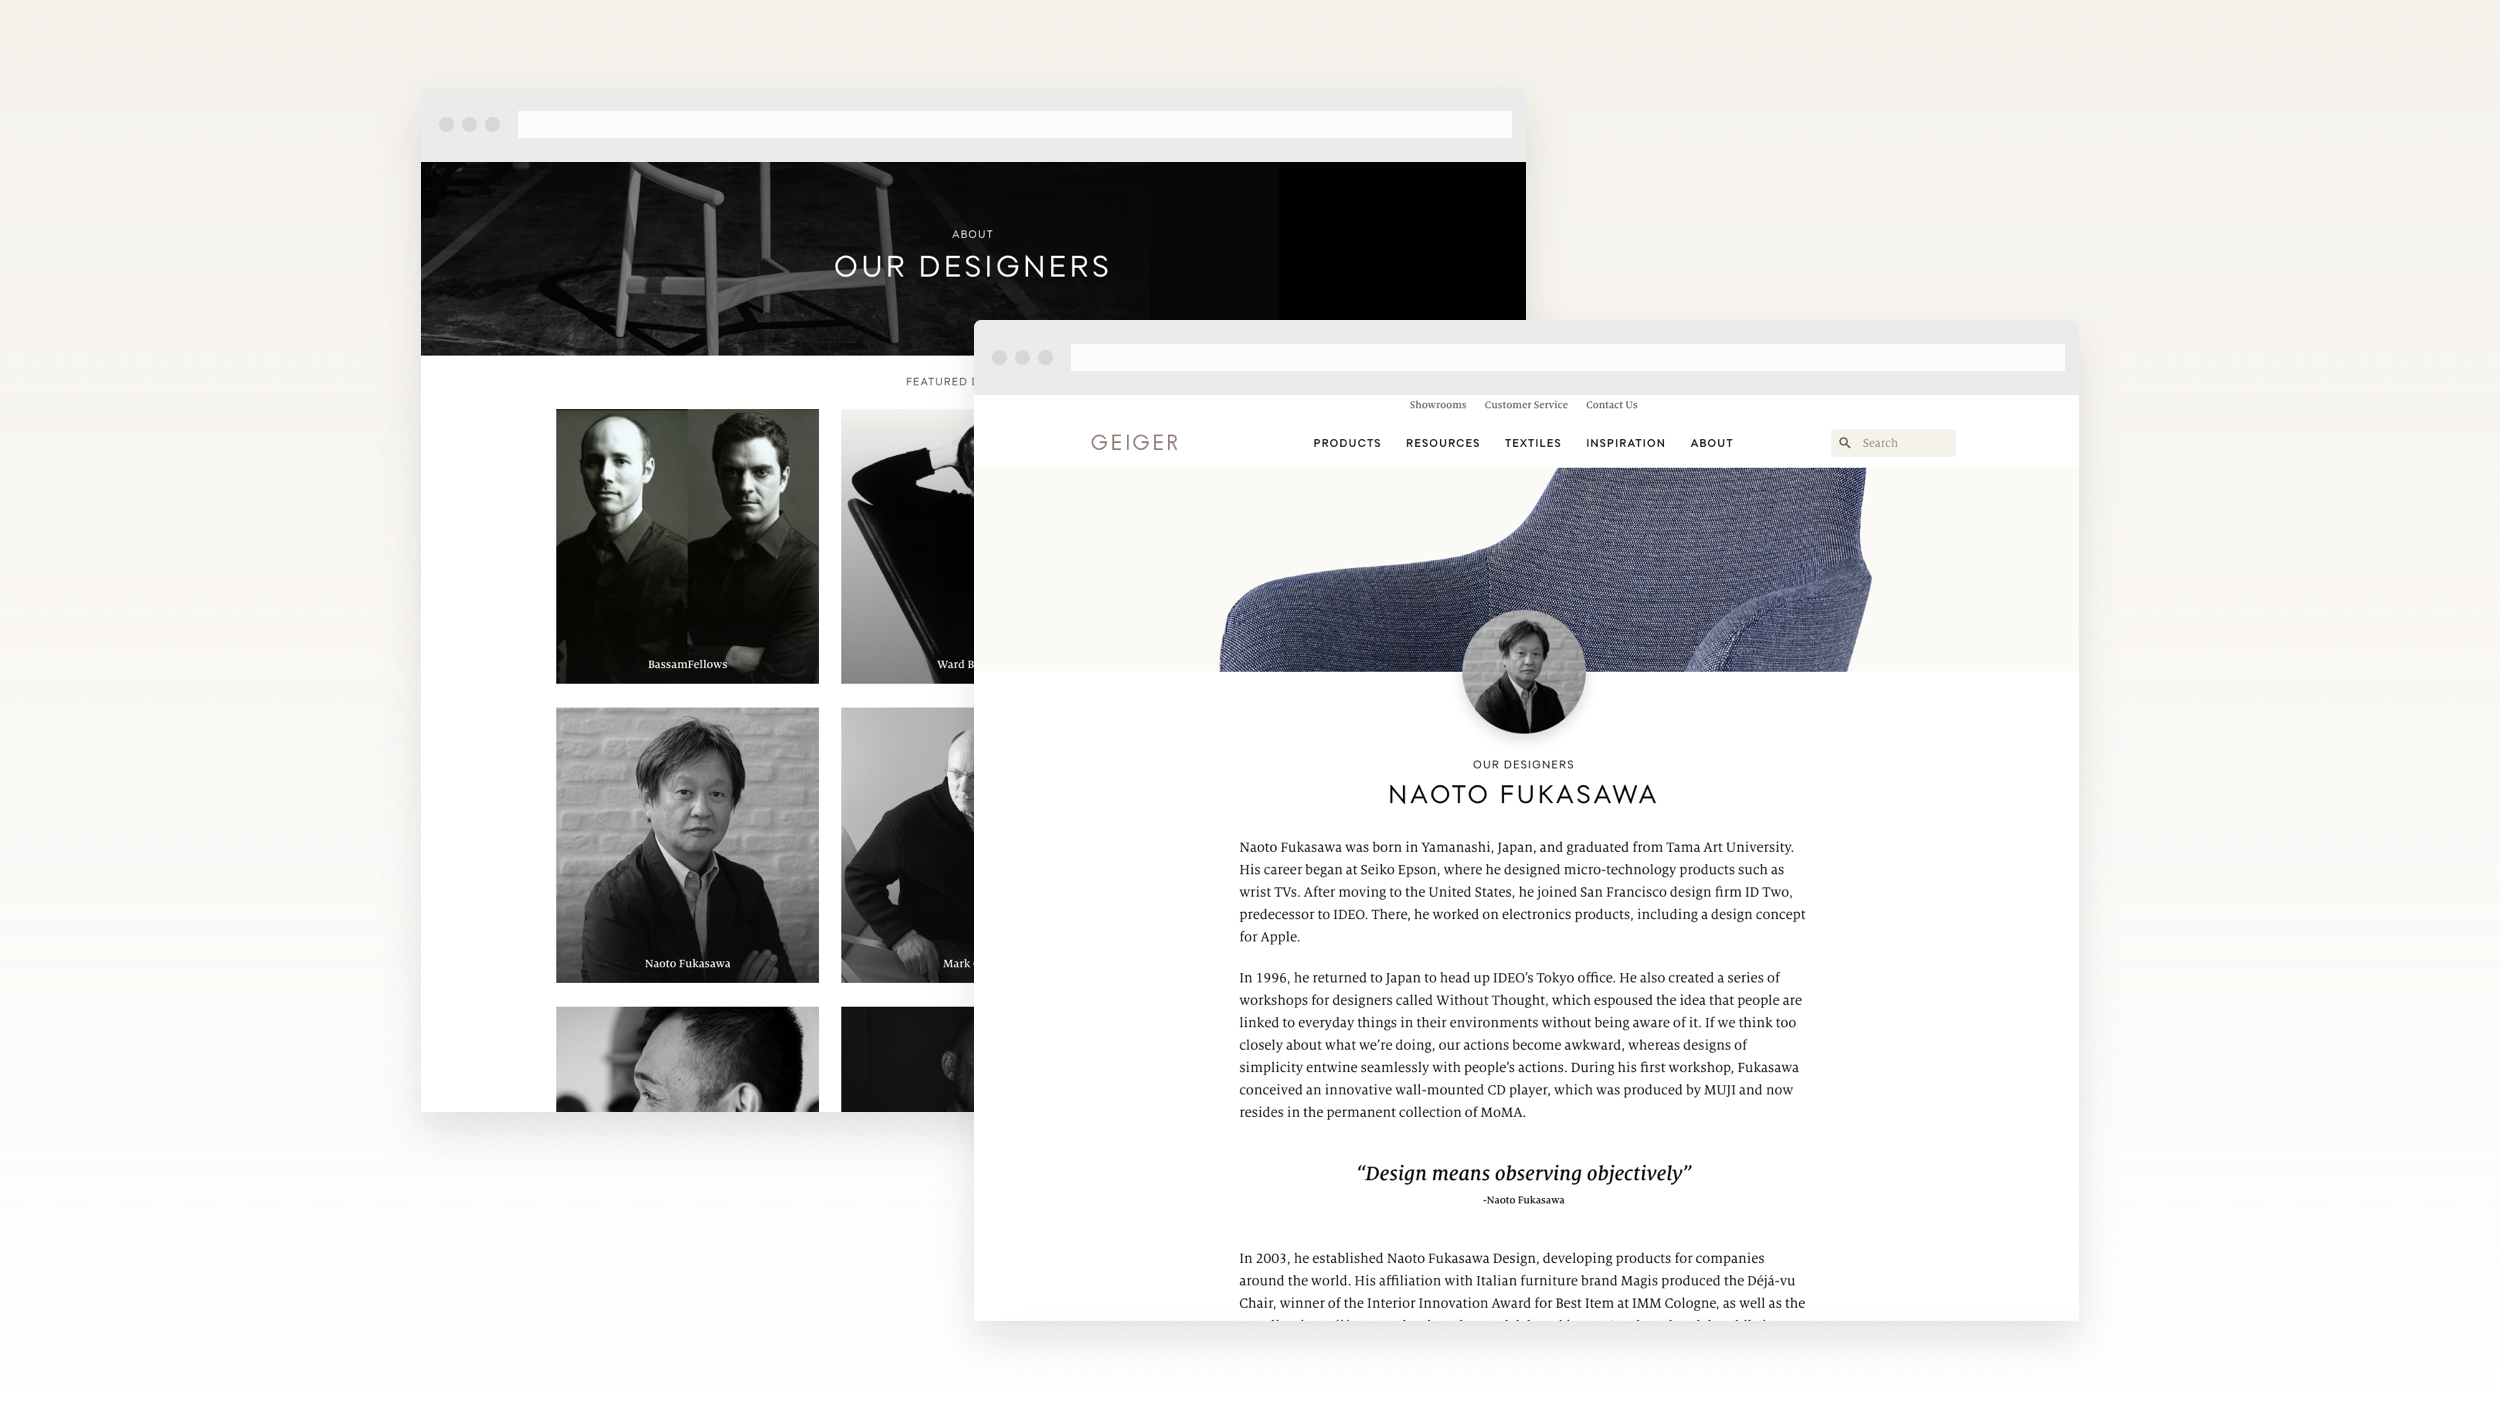 Desktop views of the Our Designers section with example design bio page.